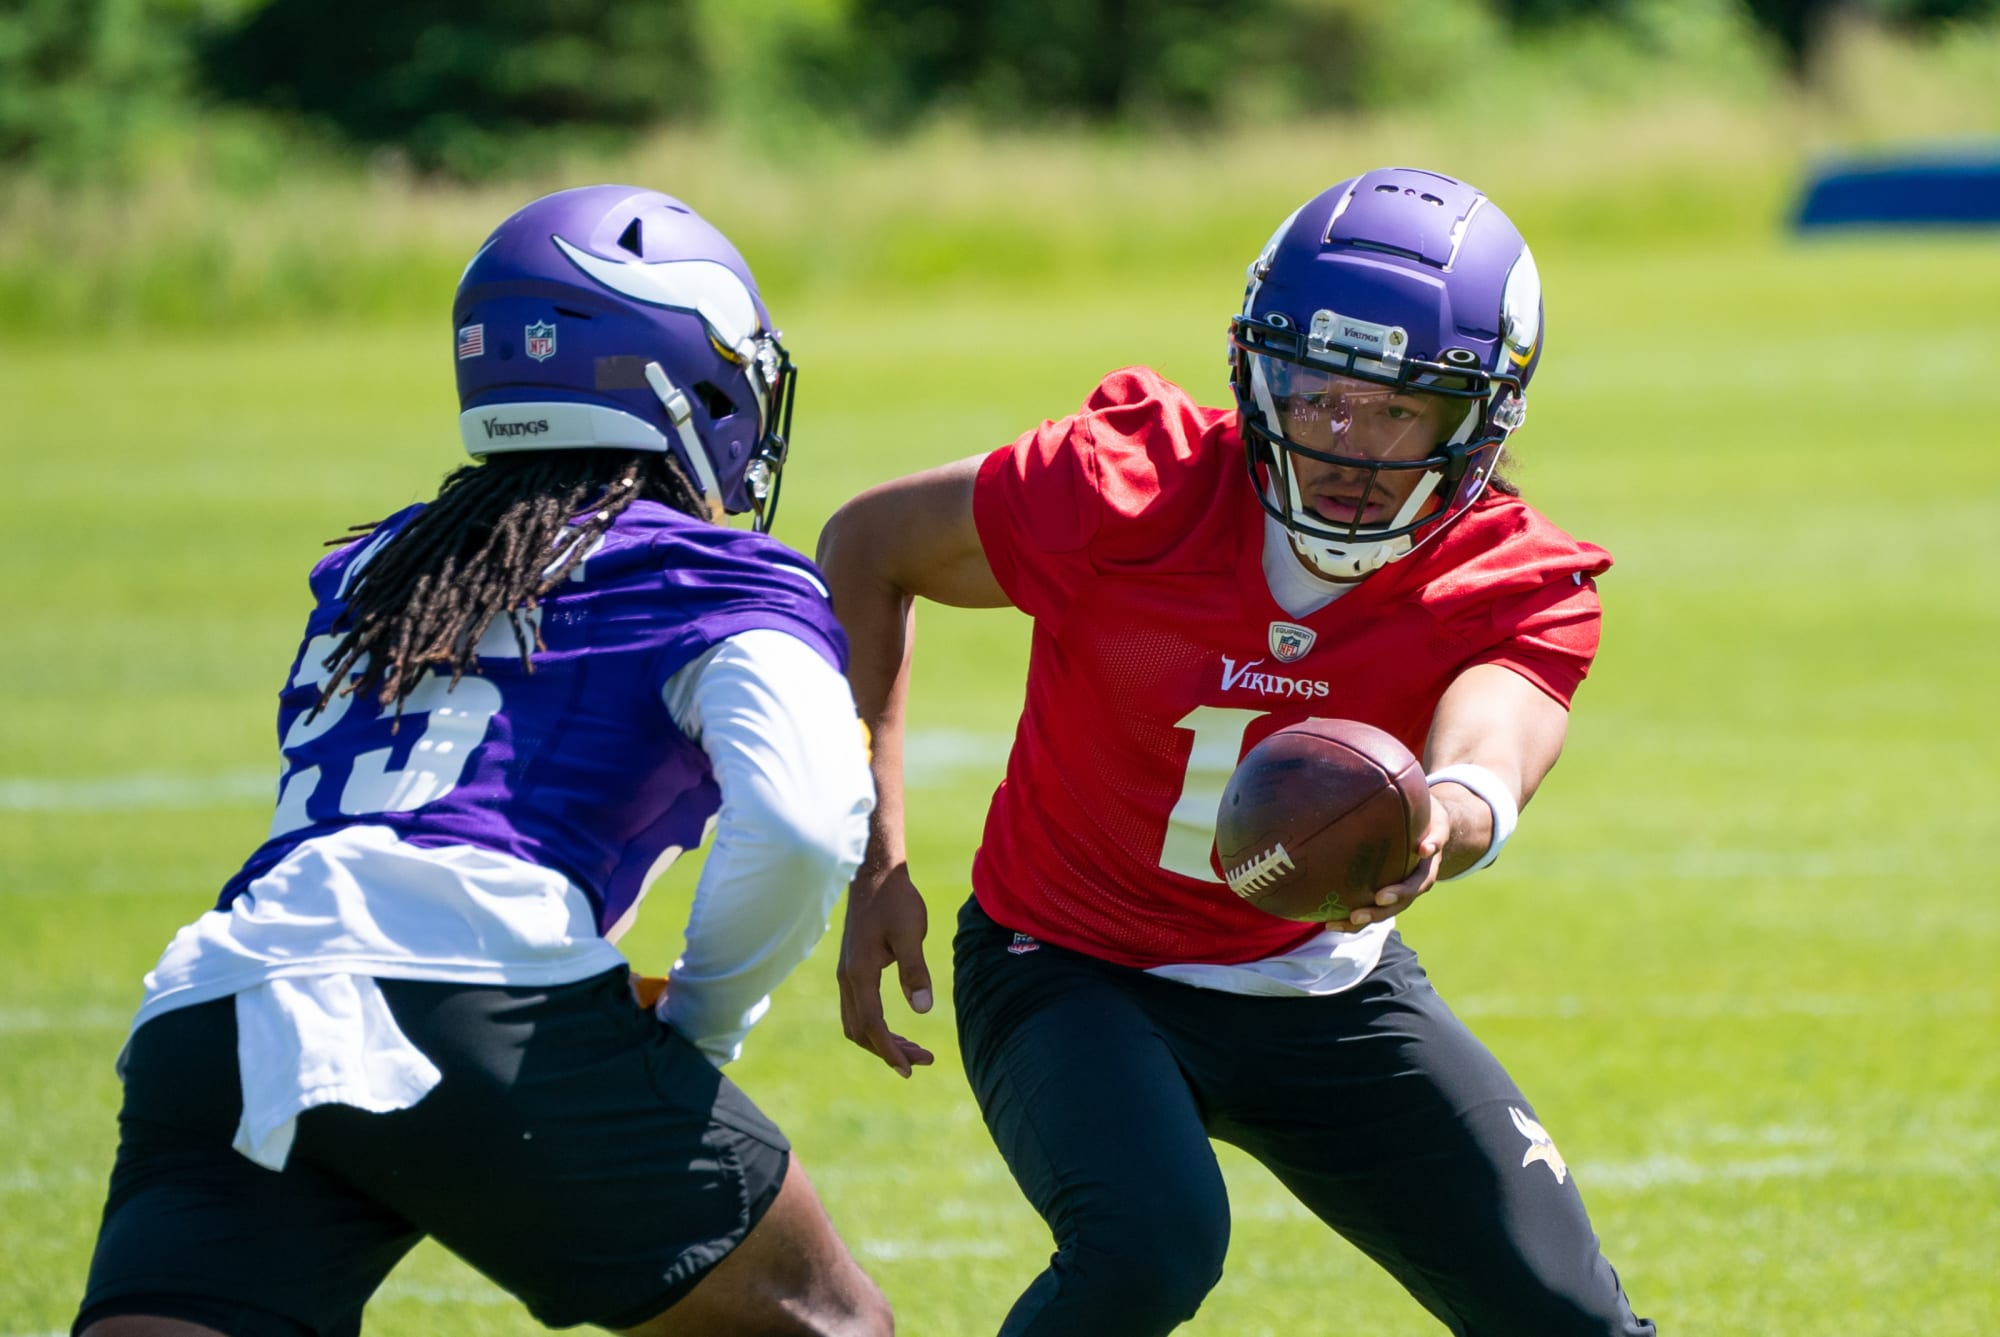 5 young Vikings players to watch closely at 2021 training camp